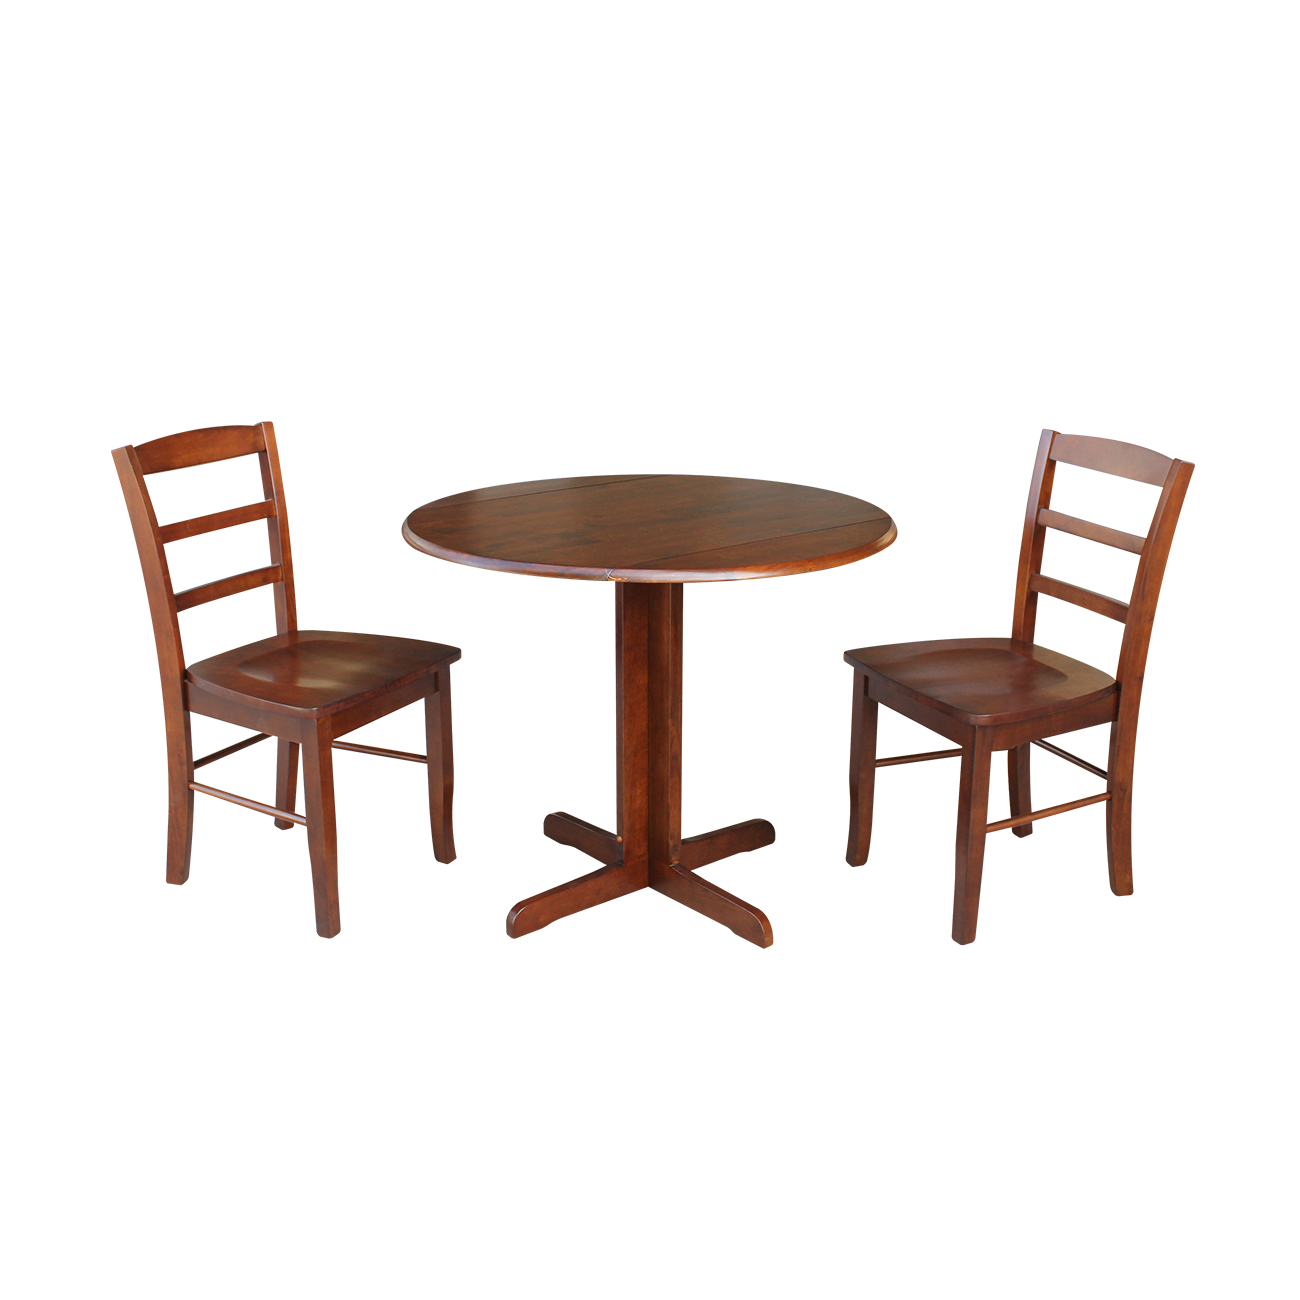 36 inch Dual Drop Leaf Dining Table with Two X-back Chairs in Espresso